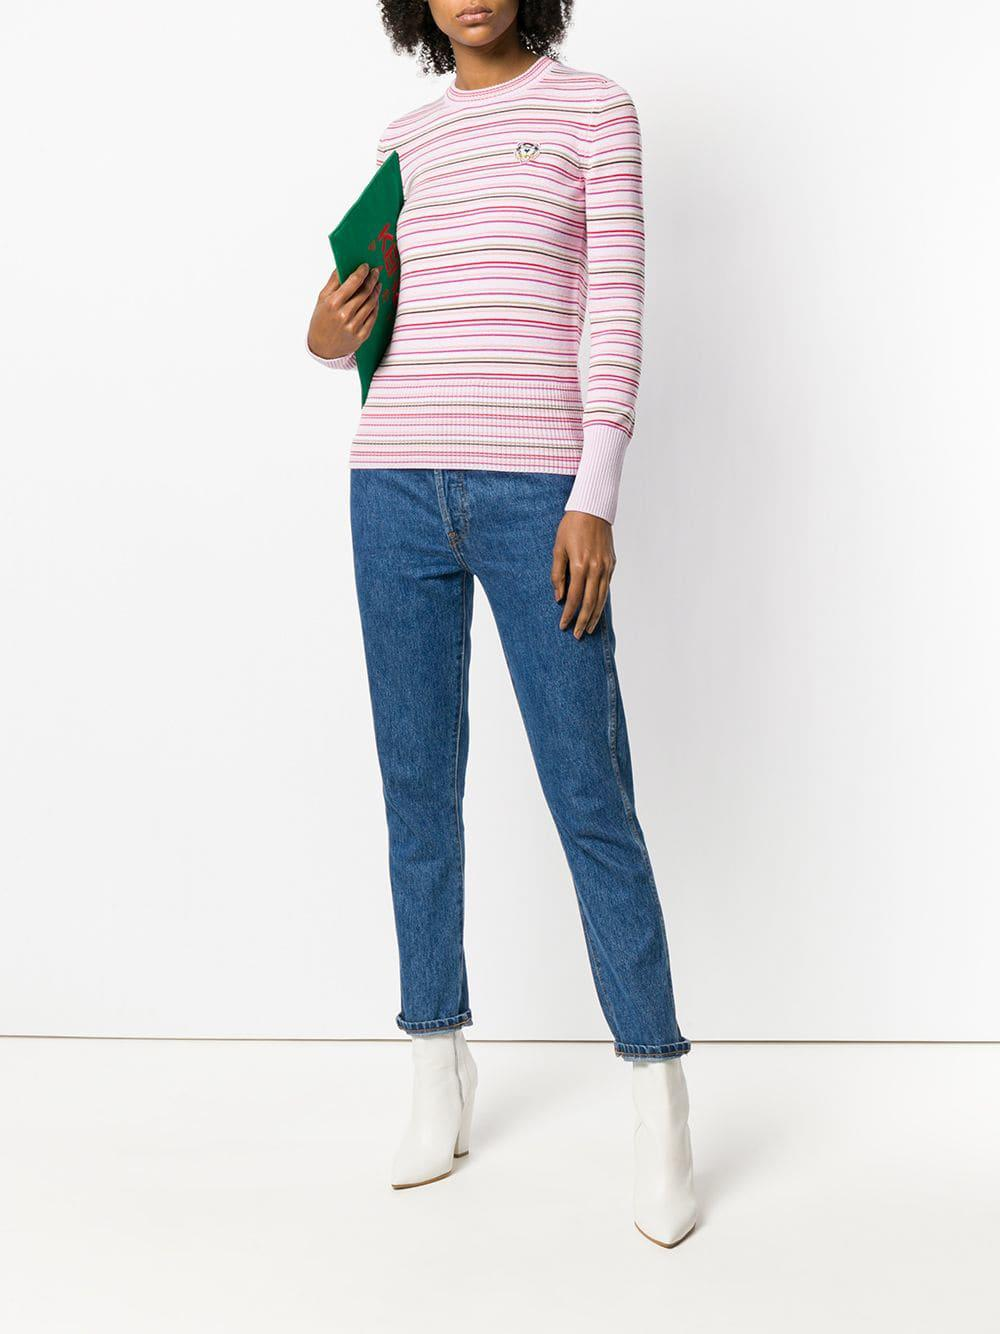 f8edfb11ed46 KENZO Tiger Crest Striped Sweater in Pink - Save 25% - Lyst